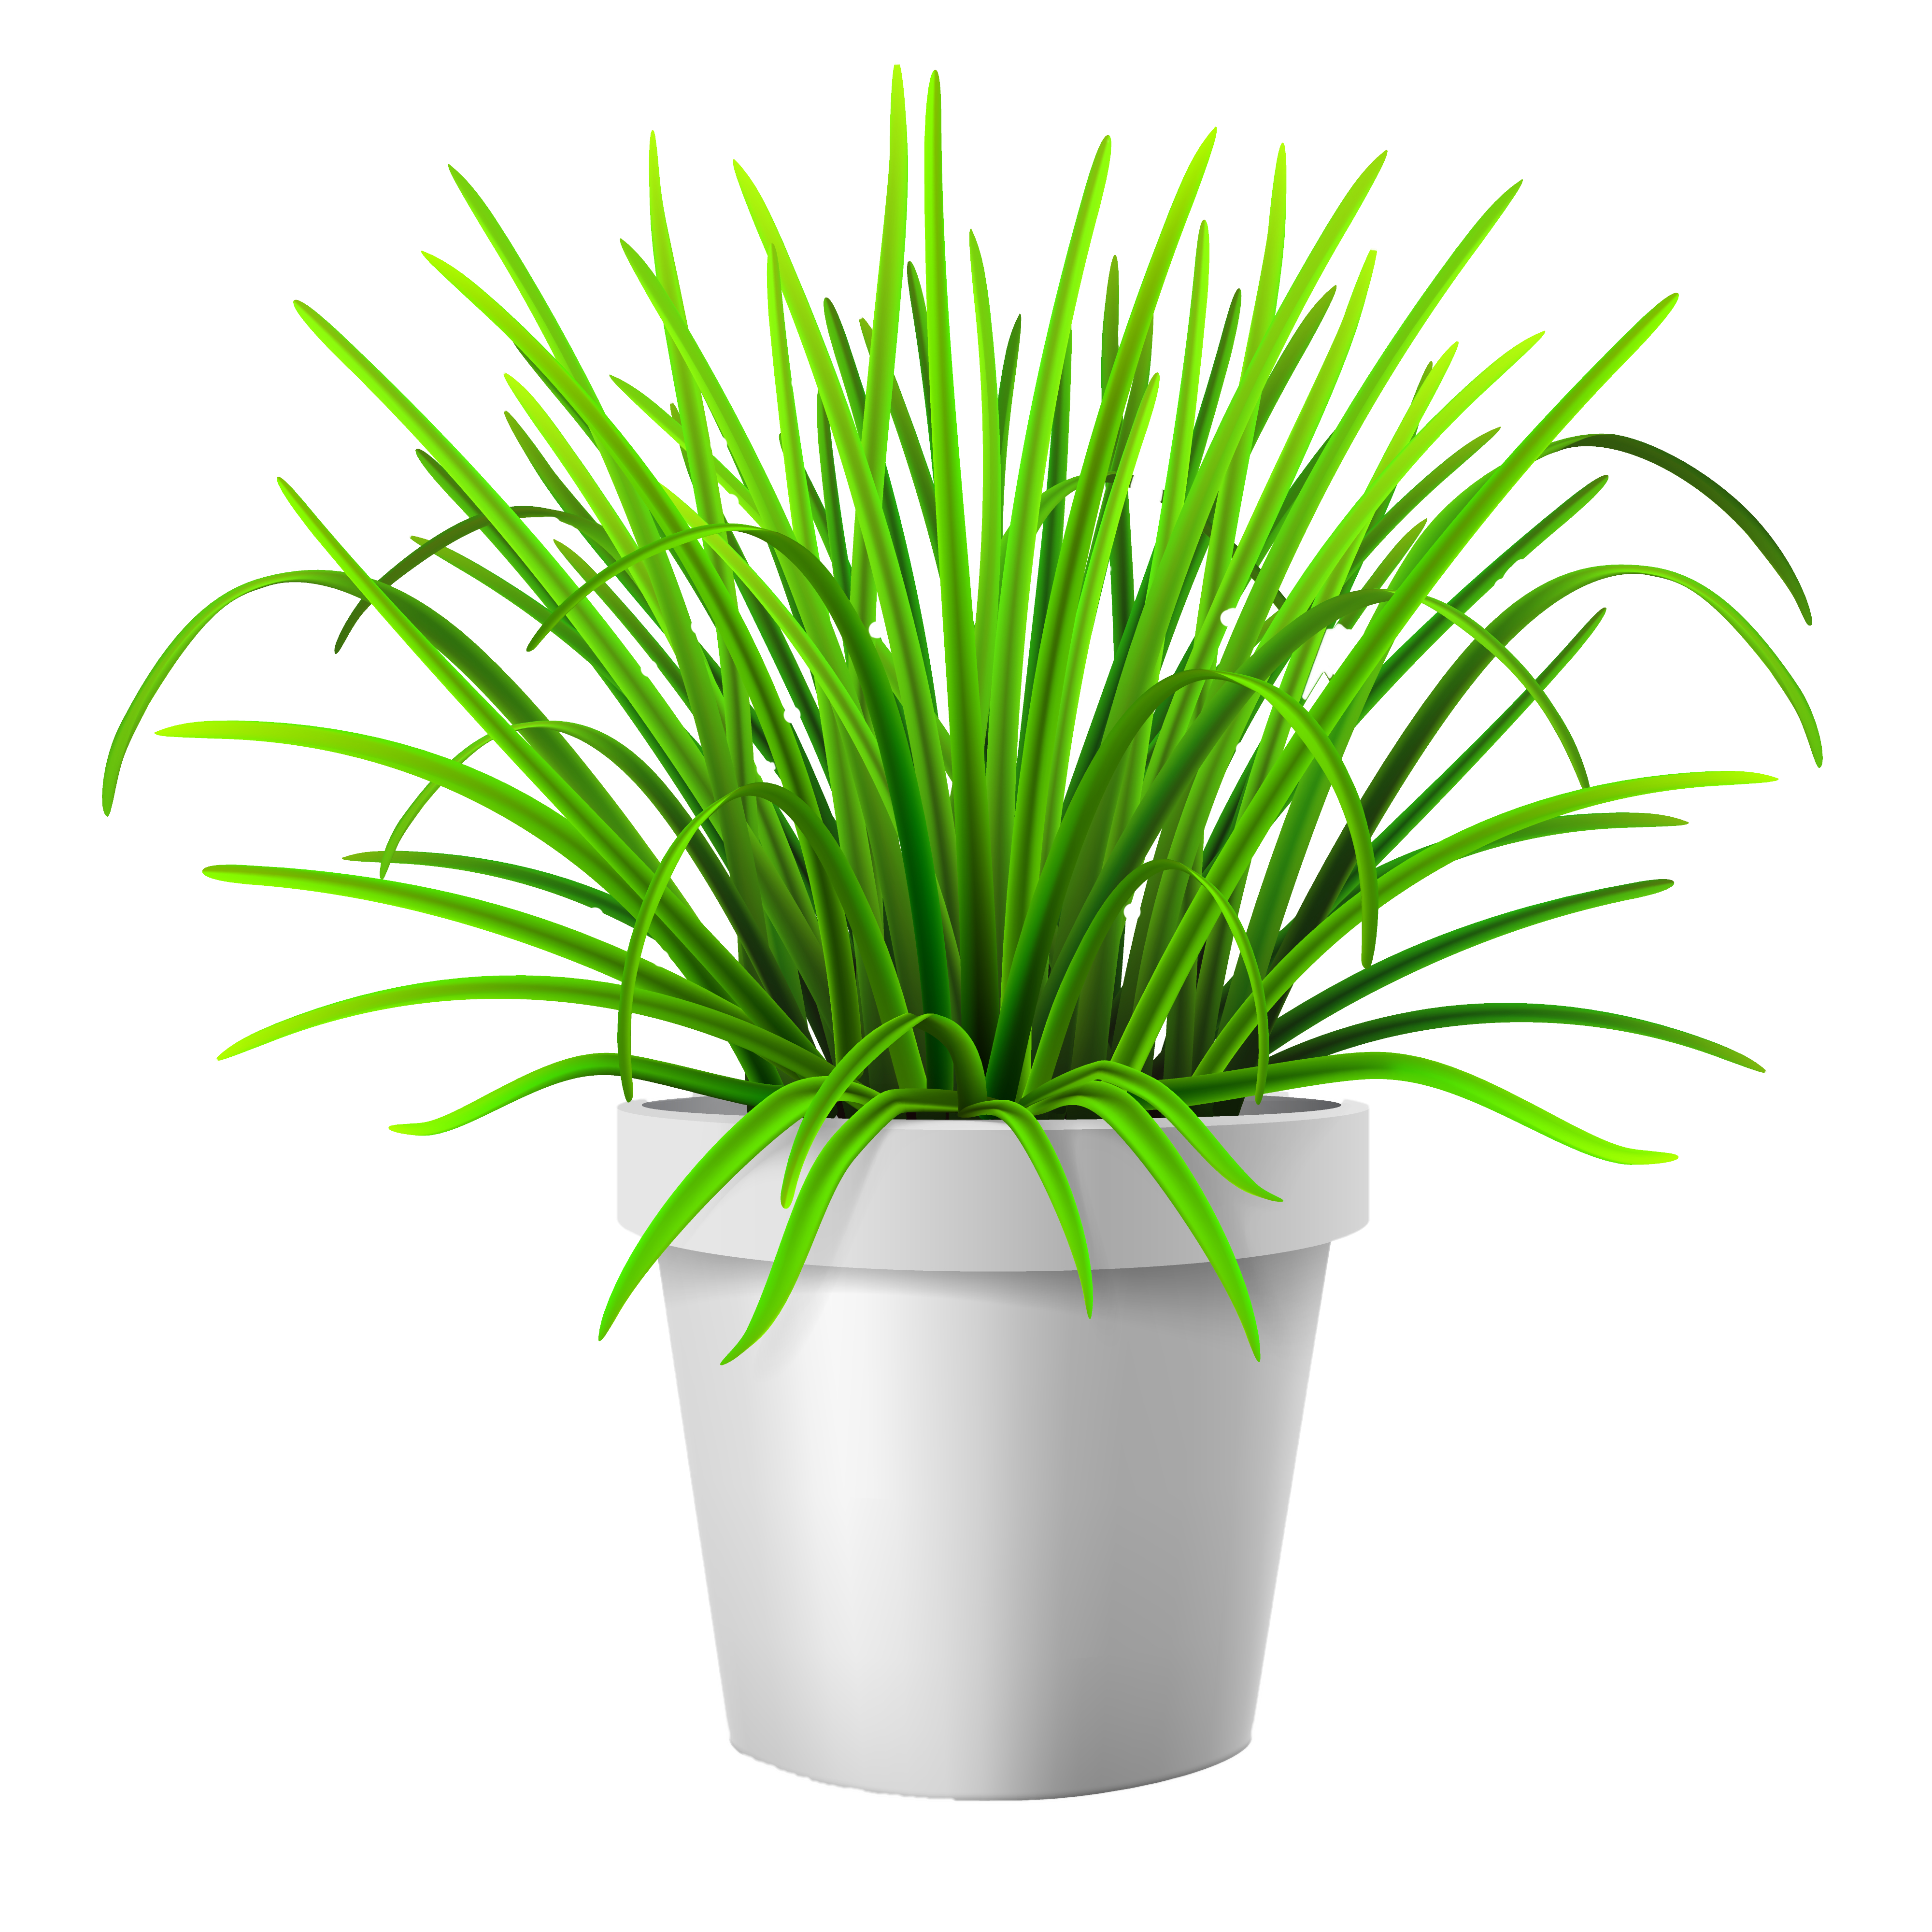 Flowerpot lawn illustration grass. Vase vector plant vector royalty free library